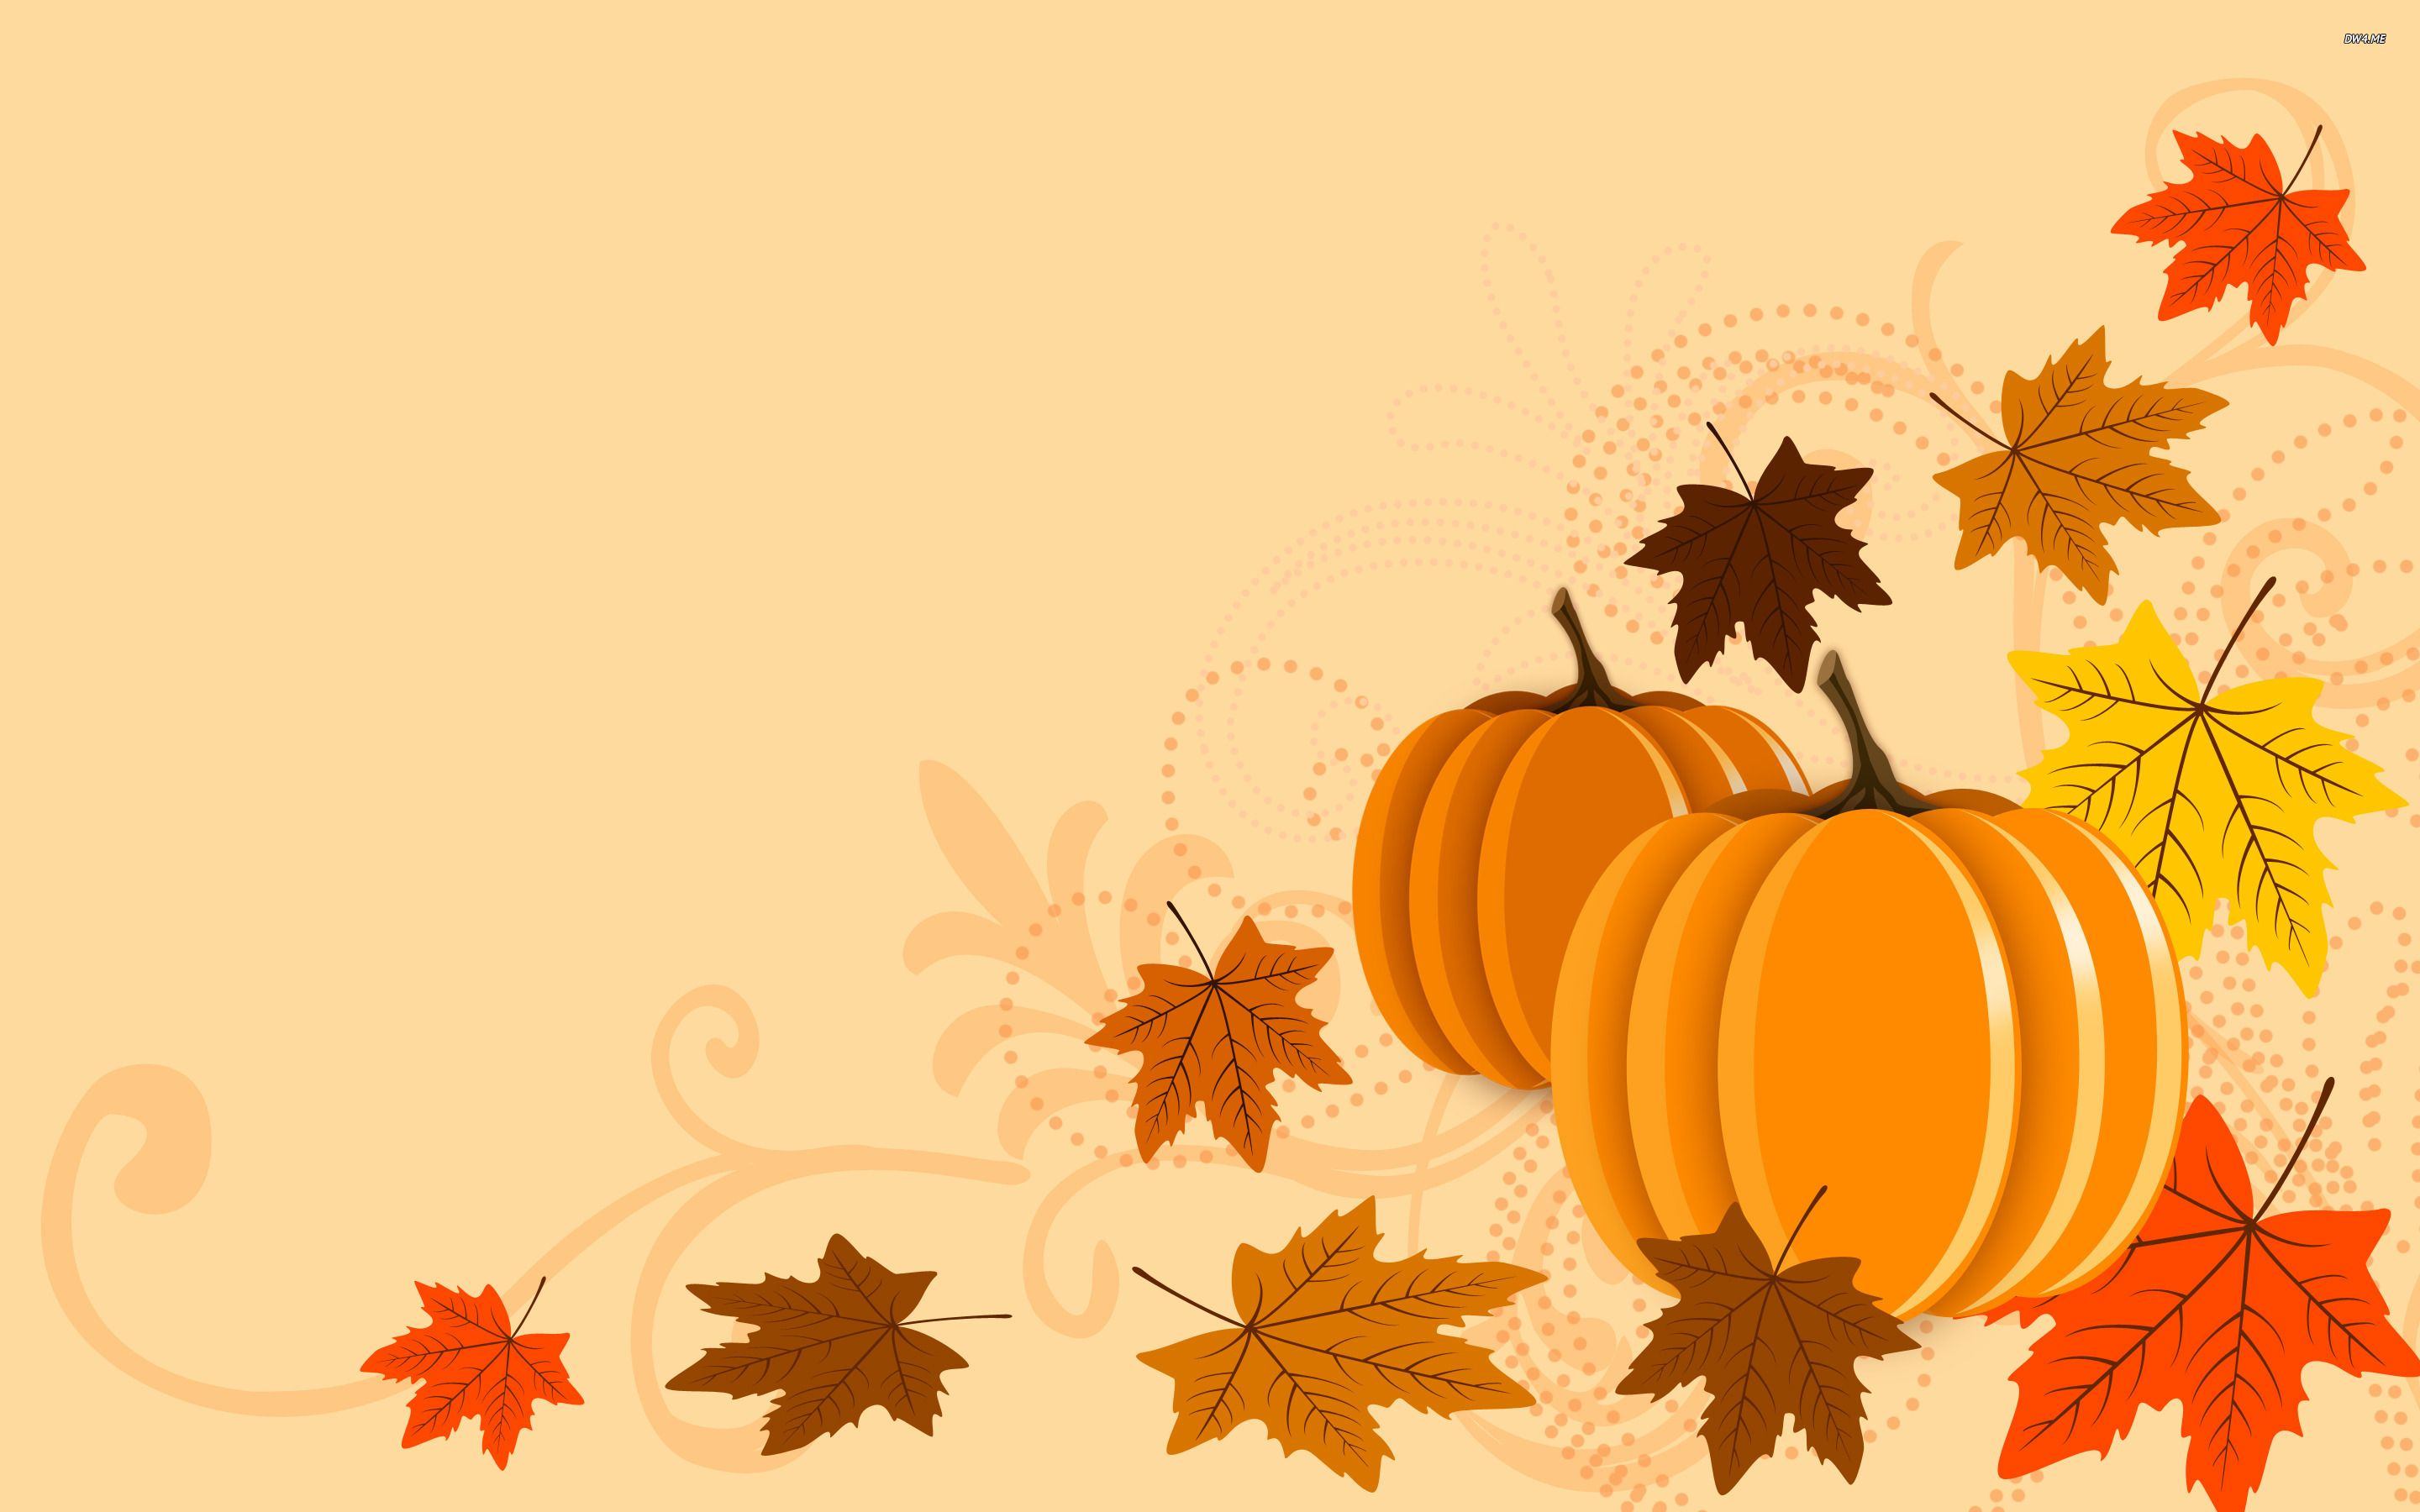 fall wallpaper for computer background Pumpkins and leaves 2880x1800